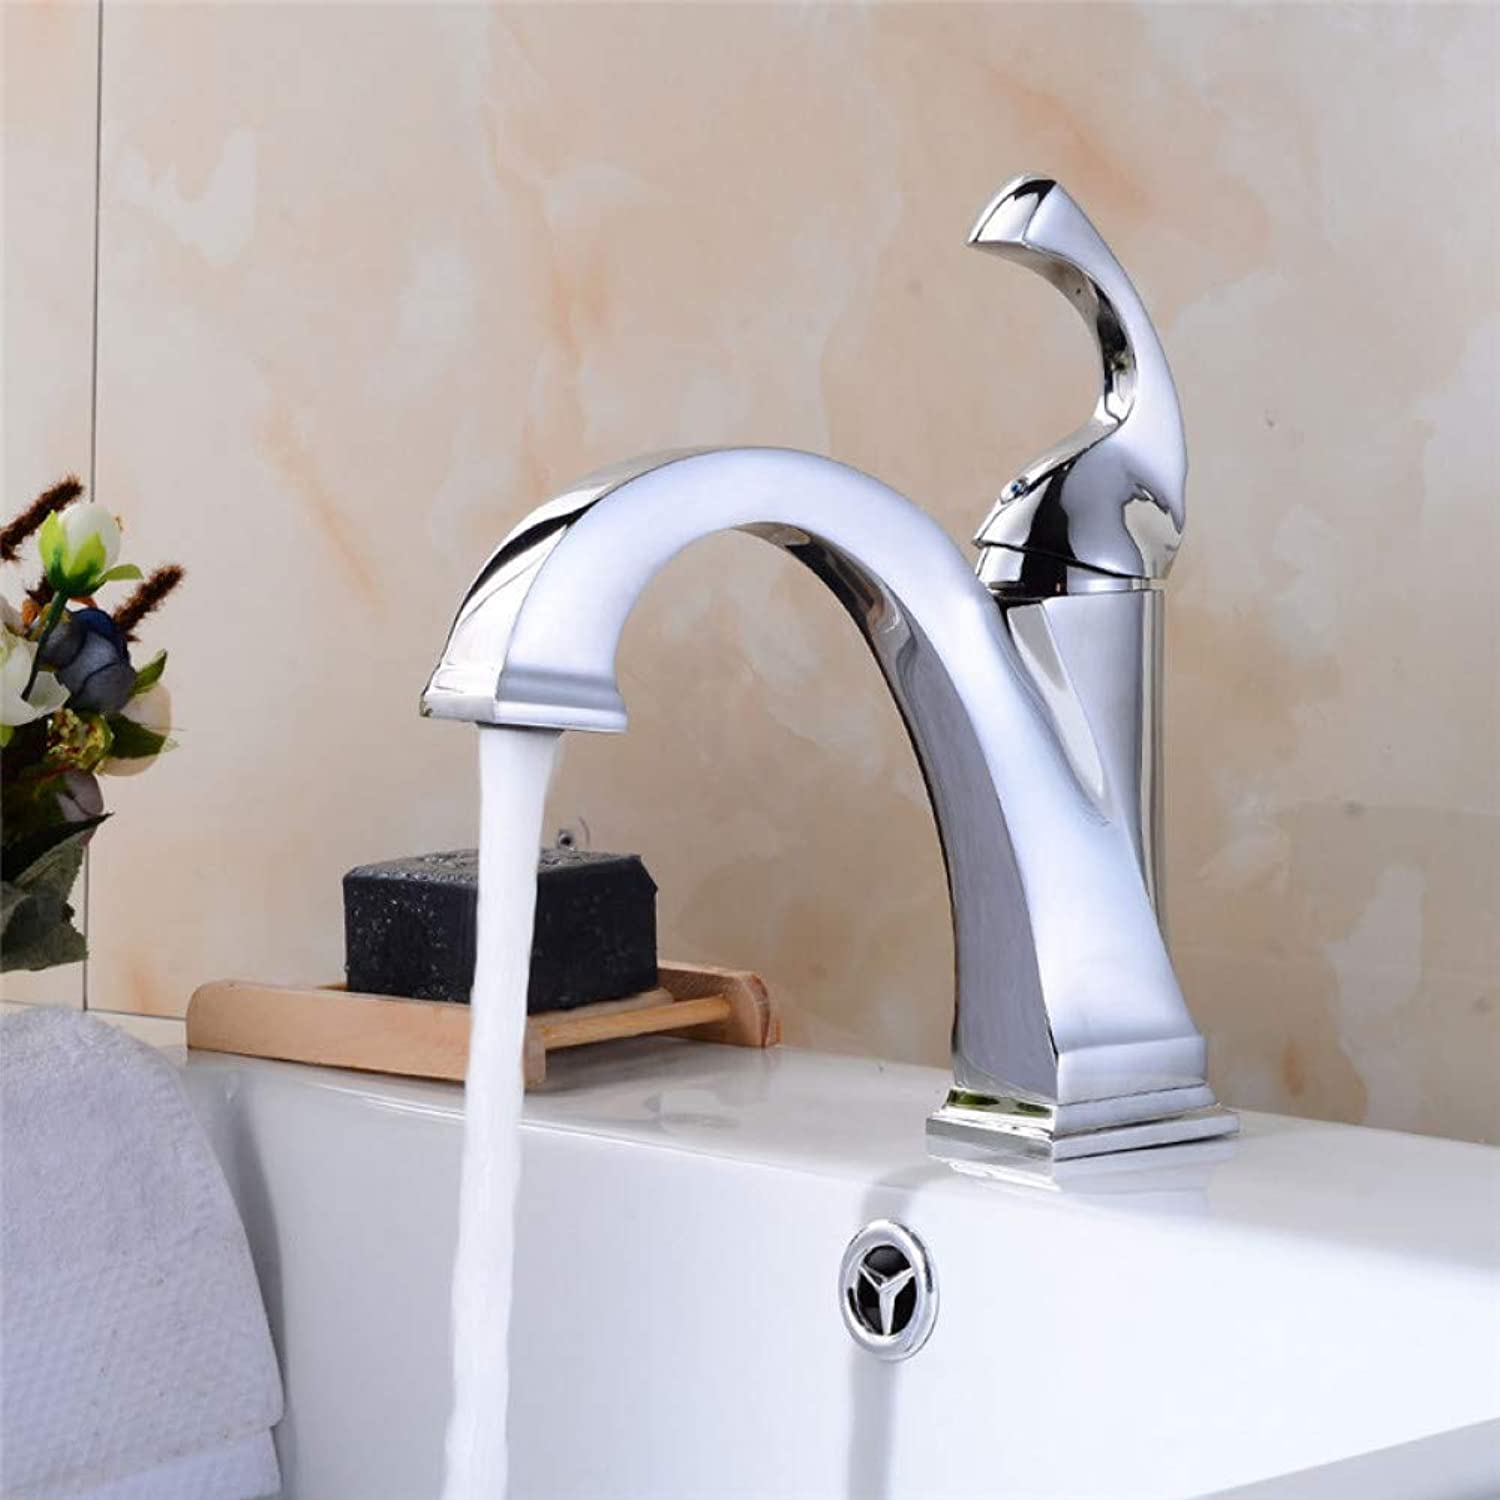 Bathroom Sink Taps YHSGY Basin Faucets Nickel Chrome Brushed Sink Mixer Tap Fashion Style Single Lever Single Hole Deck Mounted Crane Bathroom Tap